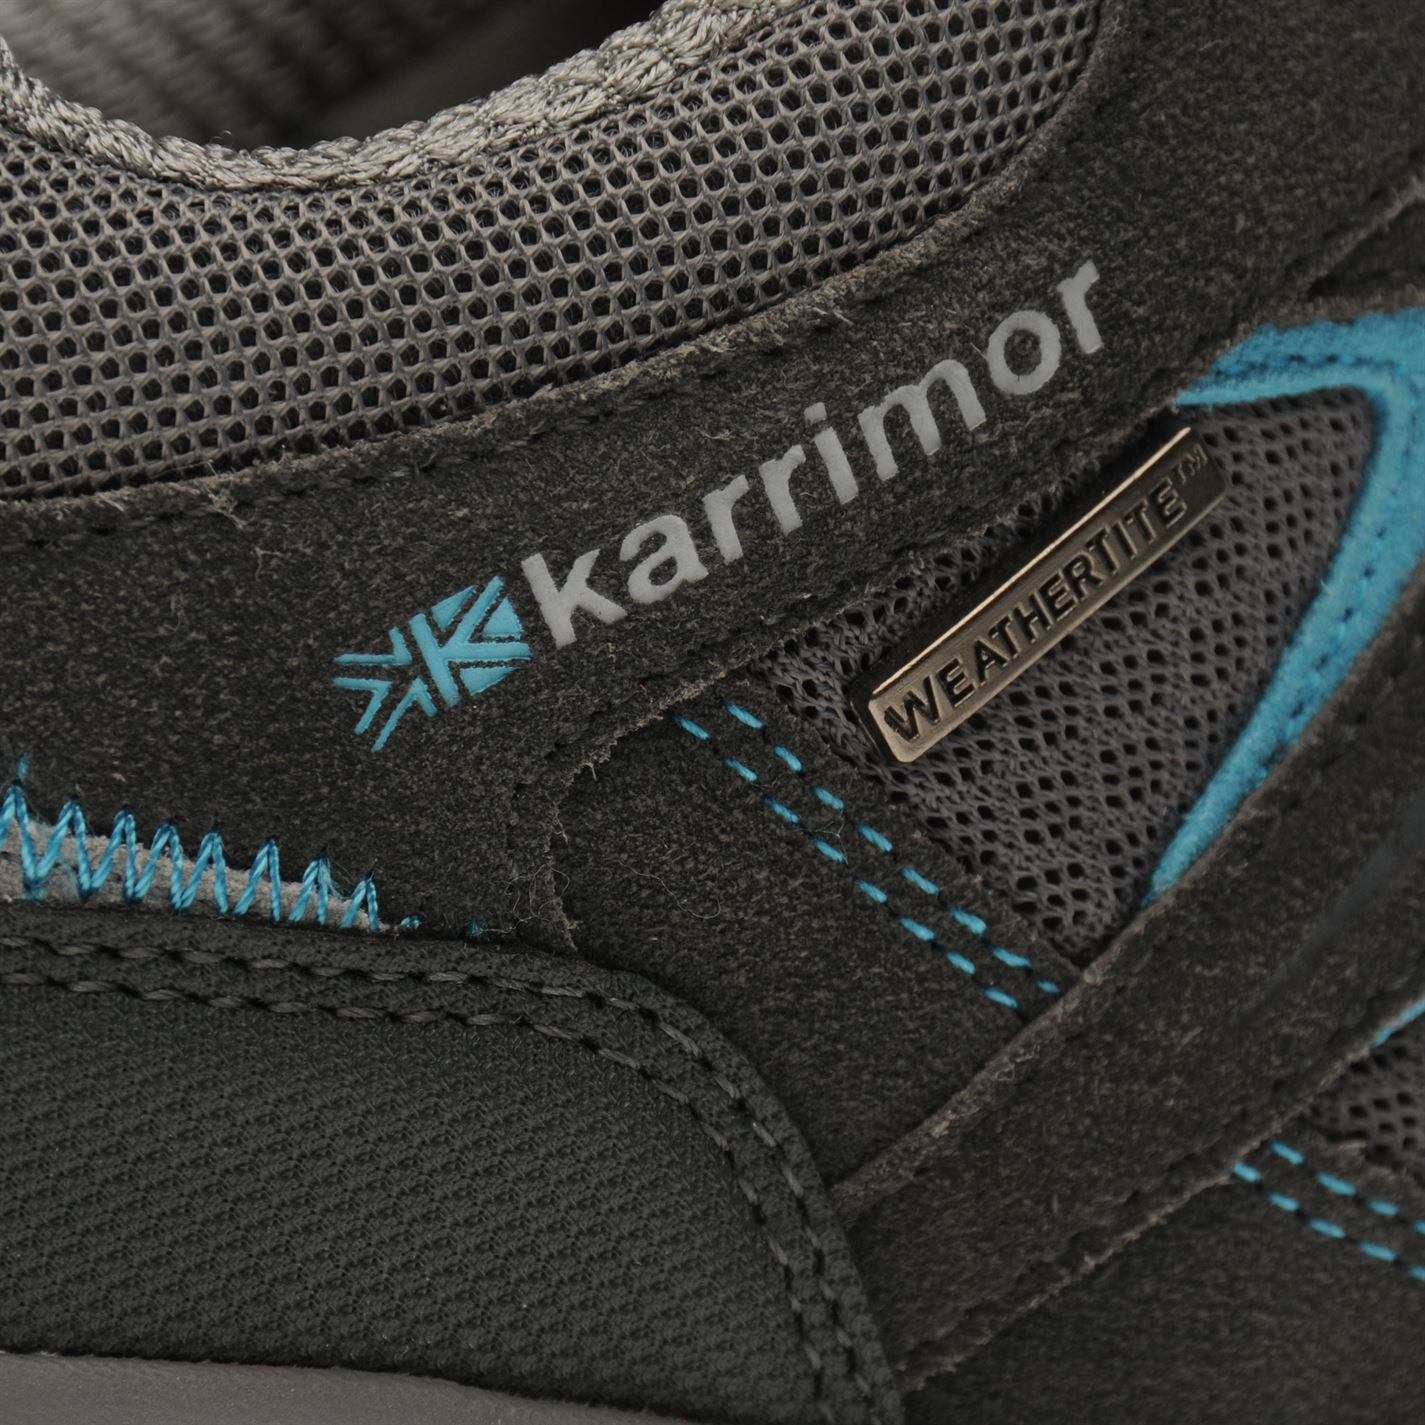 Karrimor-Womens-Mount-Low-Ladies-Walking-Shoes-Waterproof-Laced-Hiking-Trainers thumbnail 9